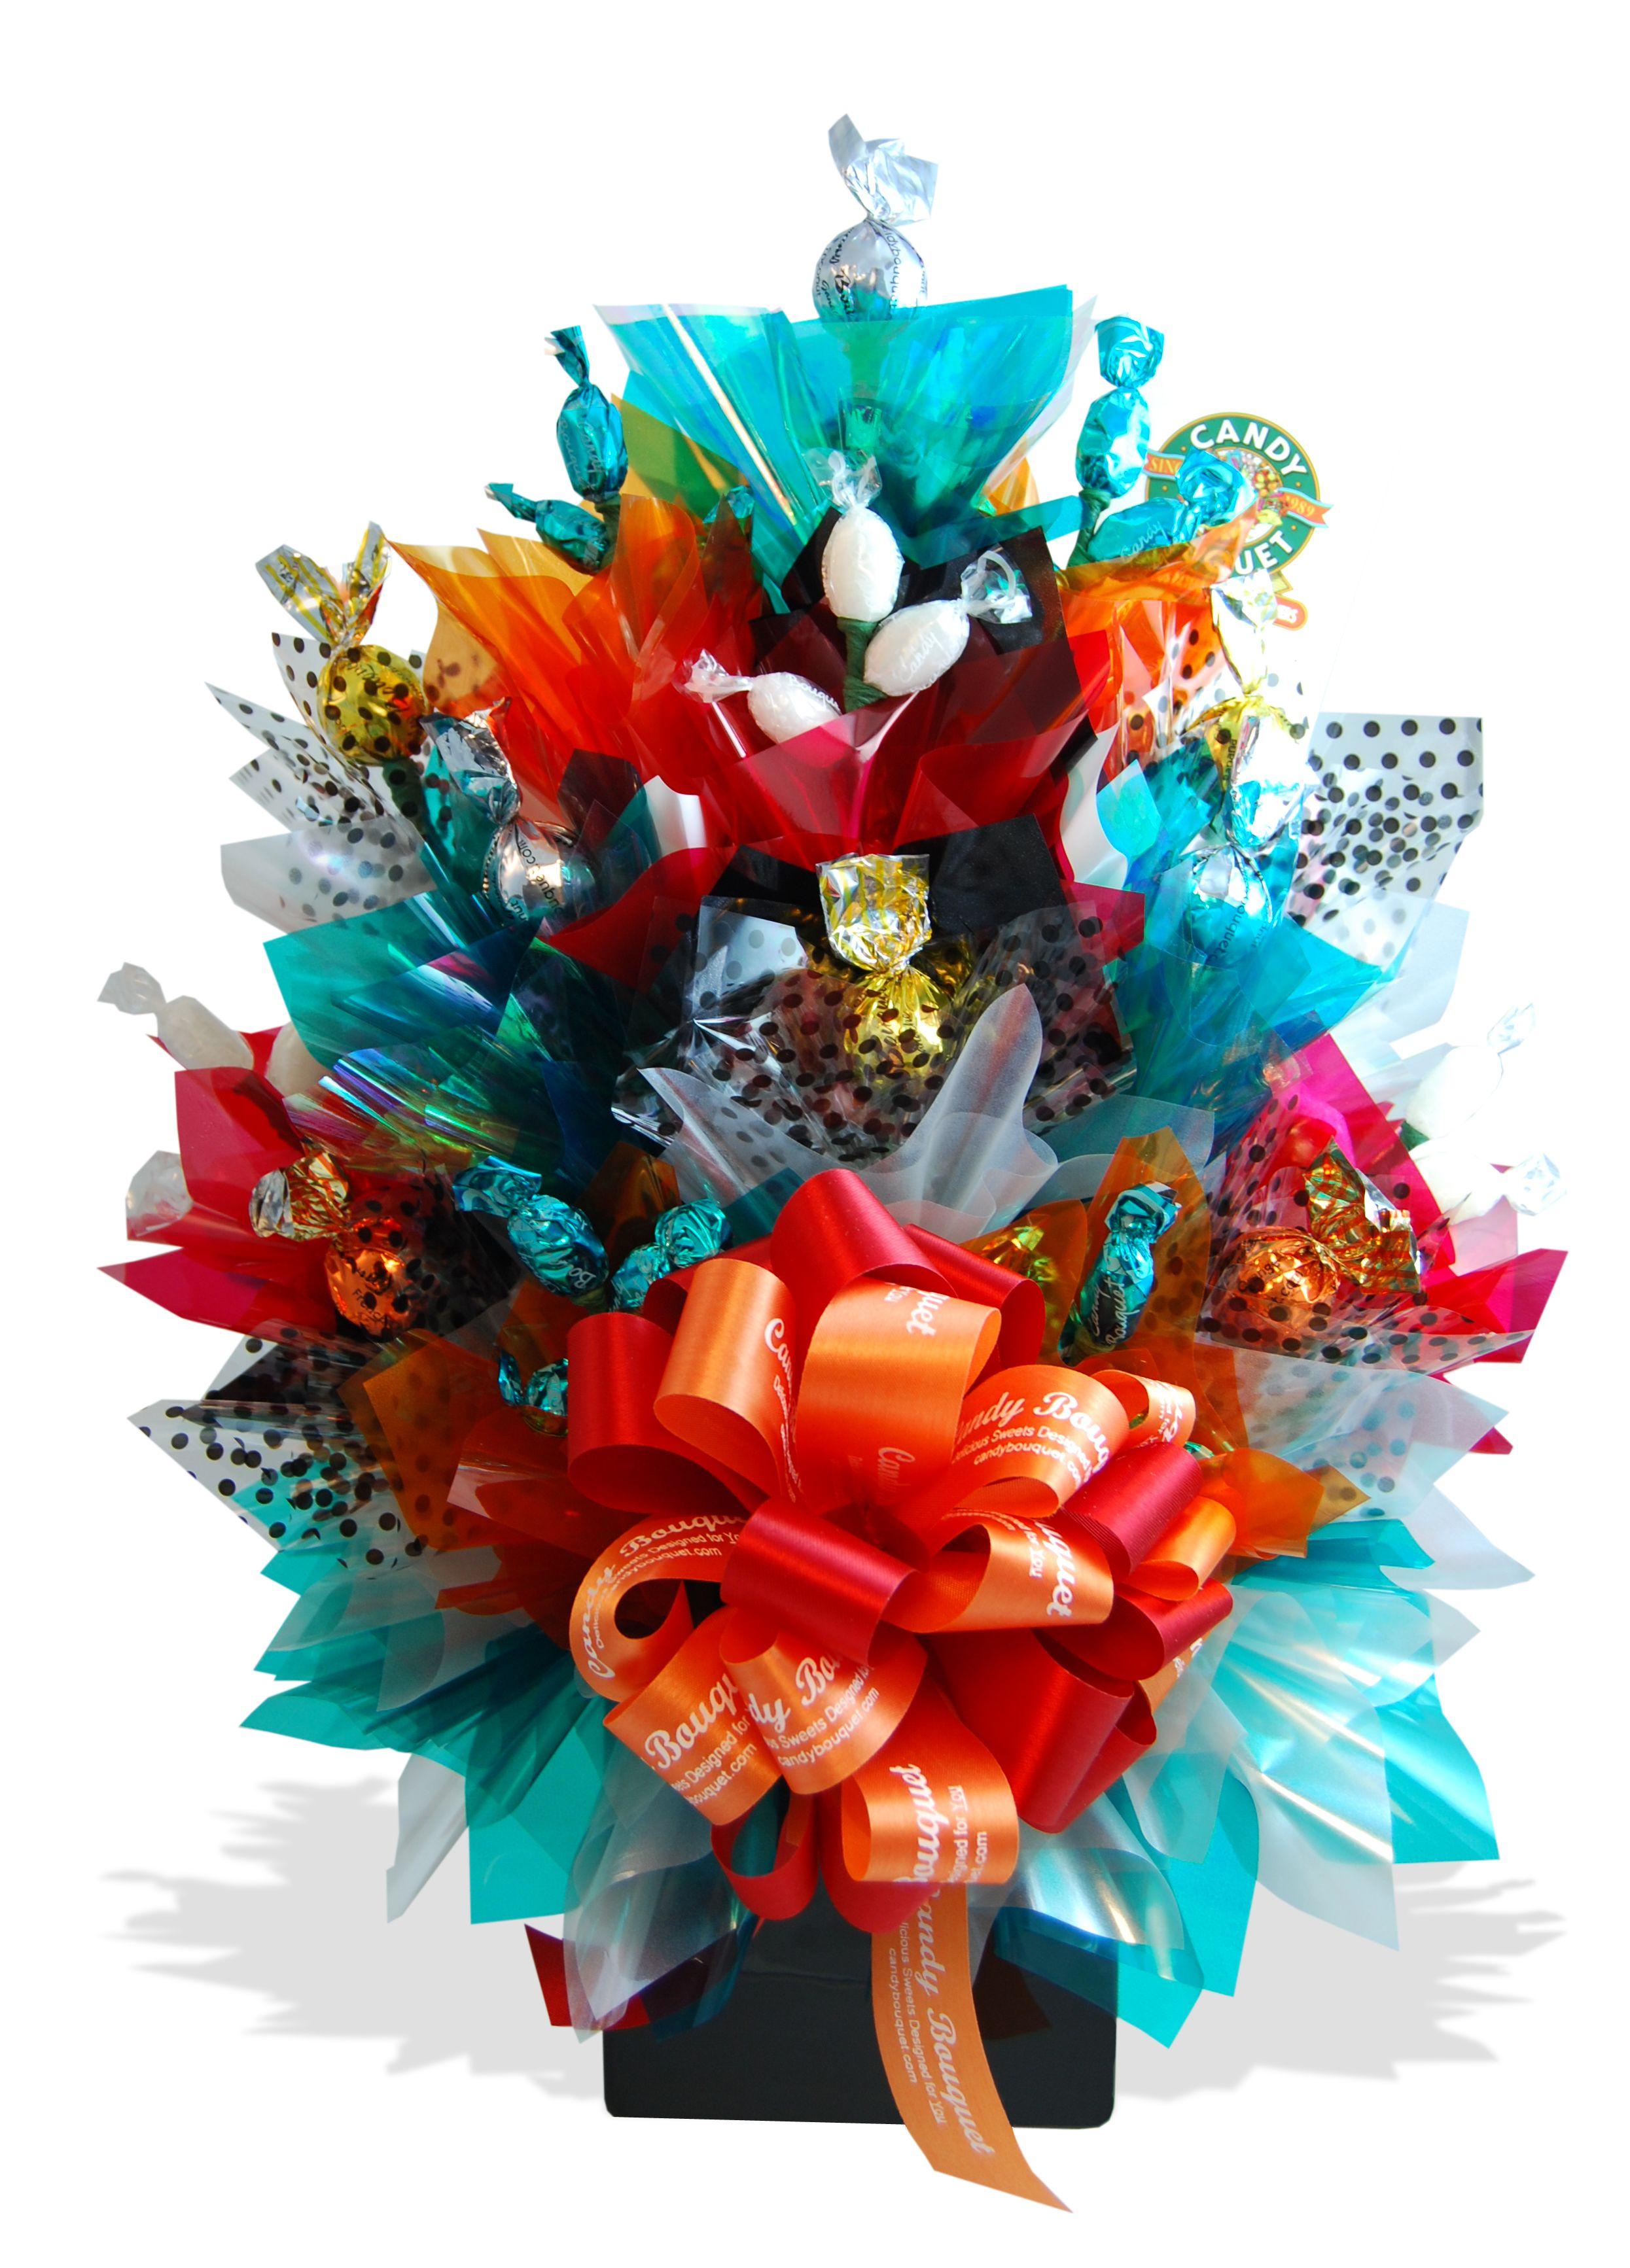 Chocolate bouquet on pinterest candy flowers bouquet of chocolate - Candy Flower Bouquets Google Search Chocolate